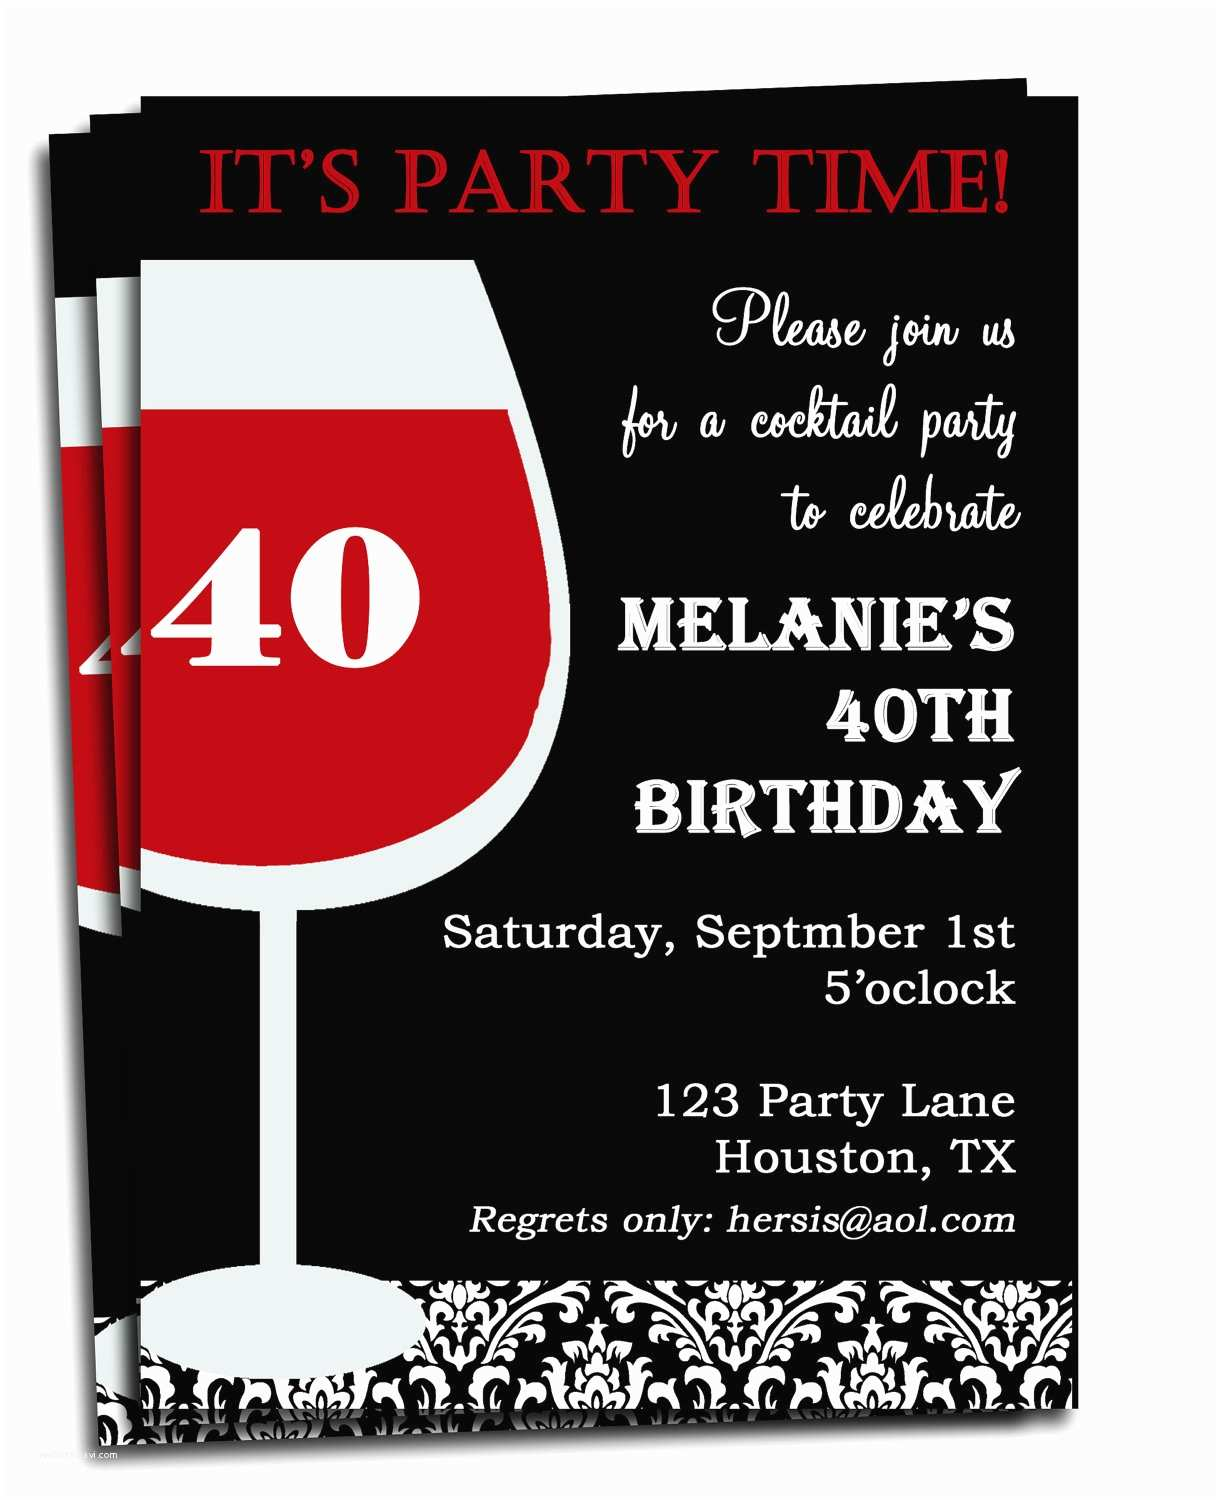 Custom Birthday Invitations Adult Birthday Invitation Printable Personalized for Your